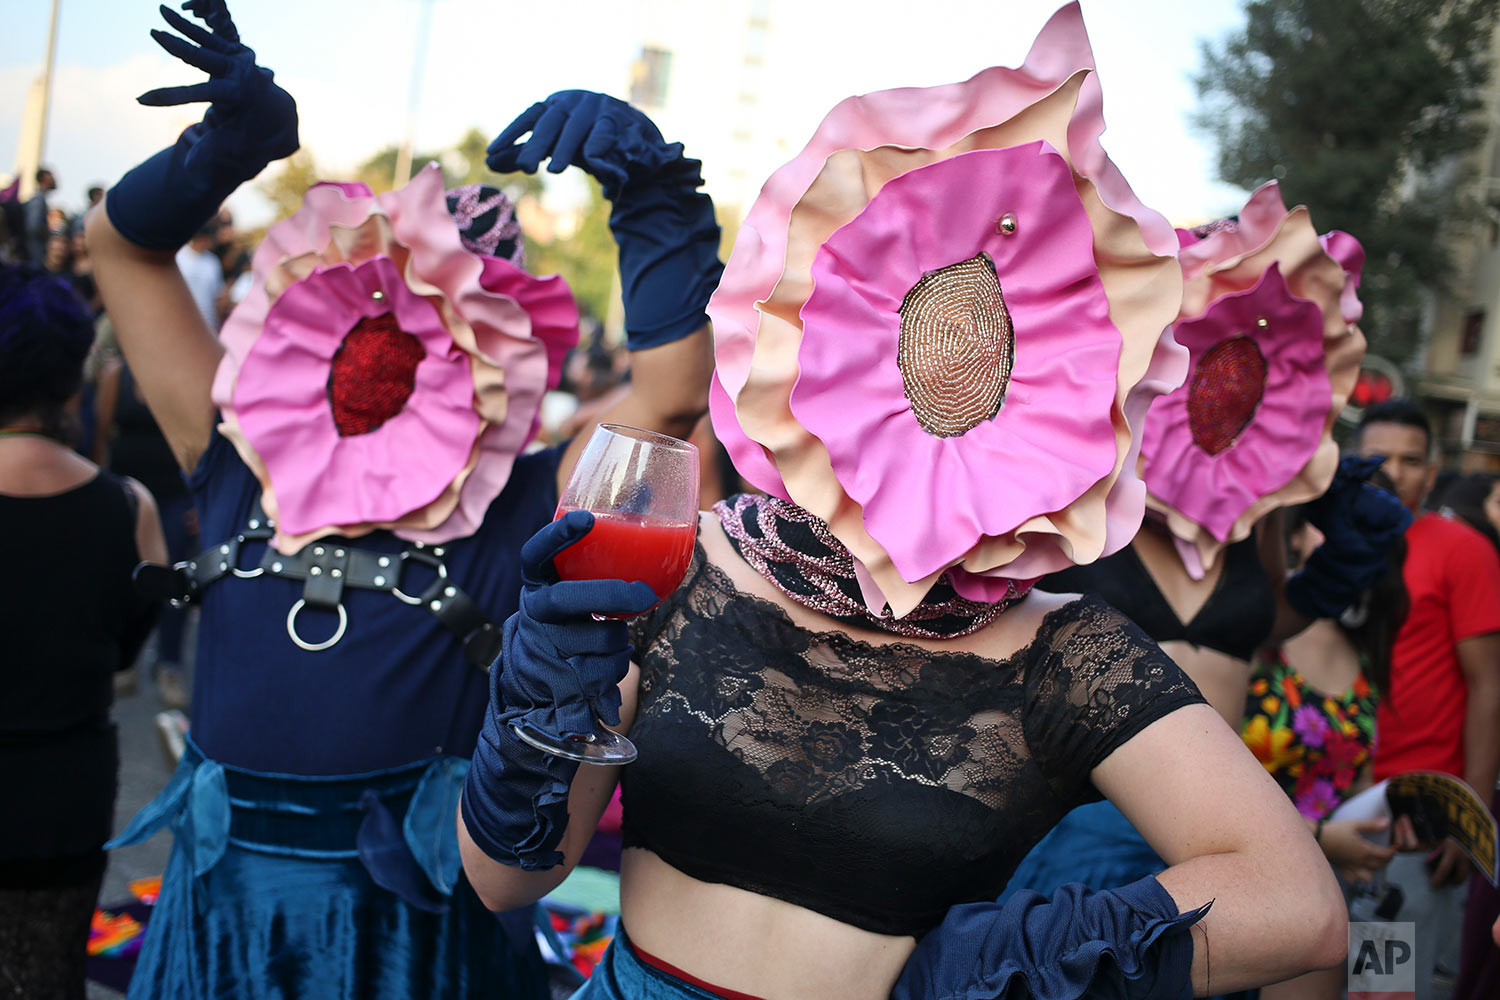 Women wearing masks in the likeness of vaginas perform during a march commemorating International Women's Day in Santiago, Chile, March 8, 2018. Many women stayed home from work, joined rallies or wore red Wednesday as International Women's Day was observed with a multitude of events around the world. (AP Photo/Esteban Felix)